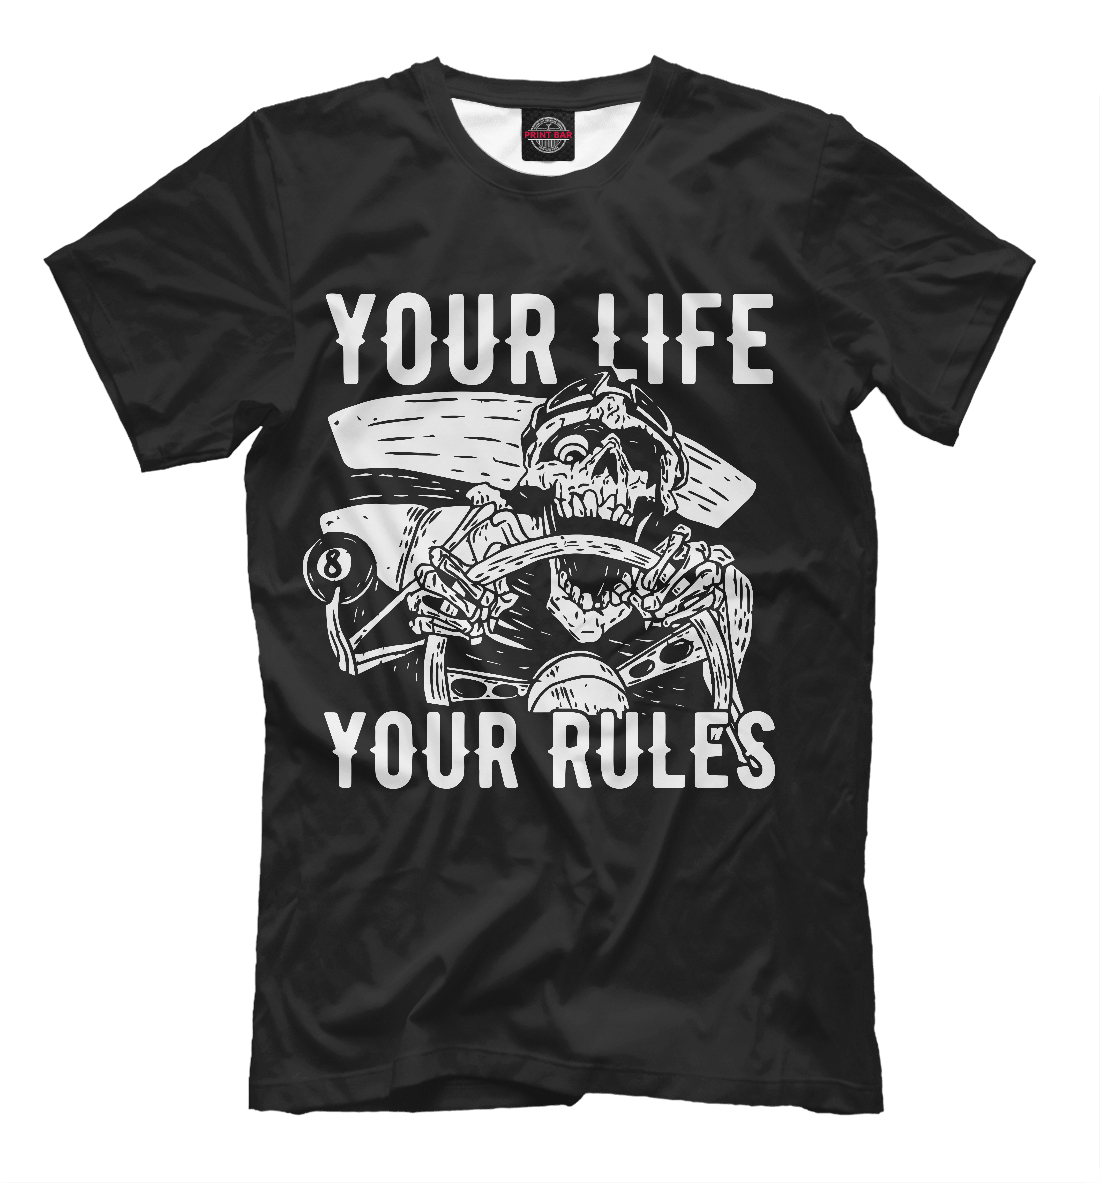 Your life - your rules rules for modern life